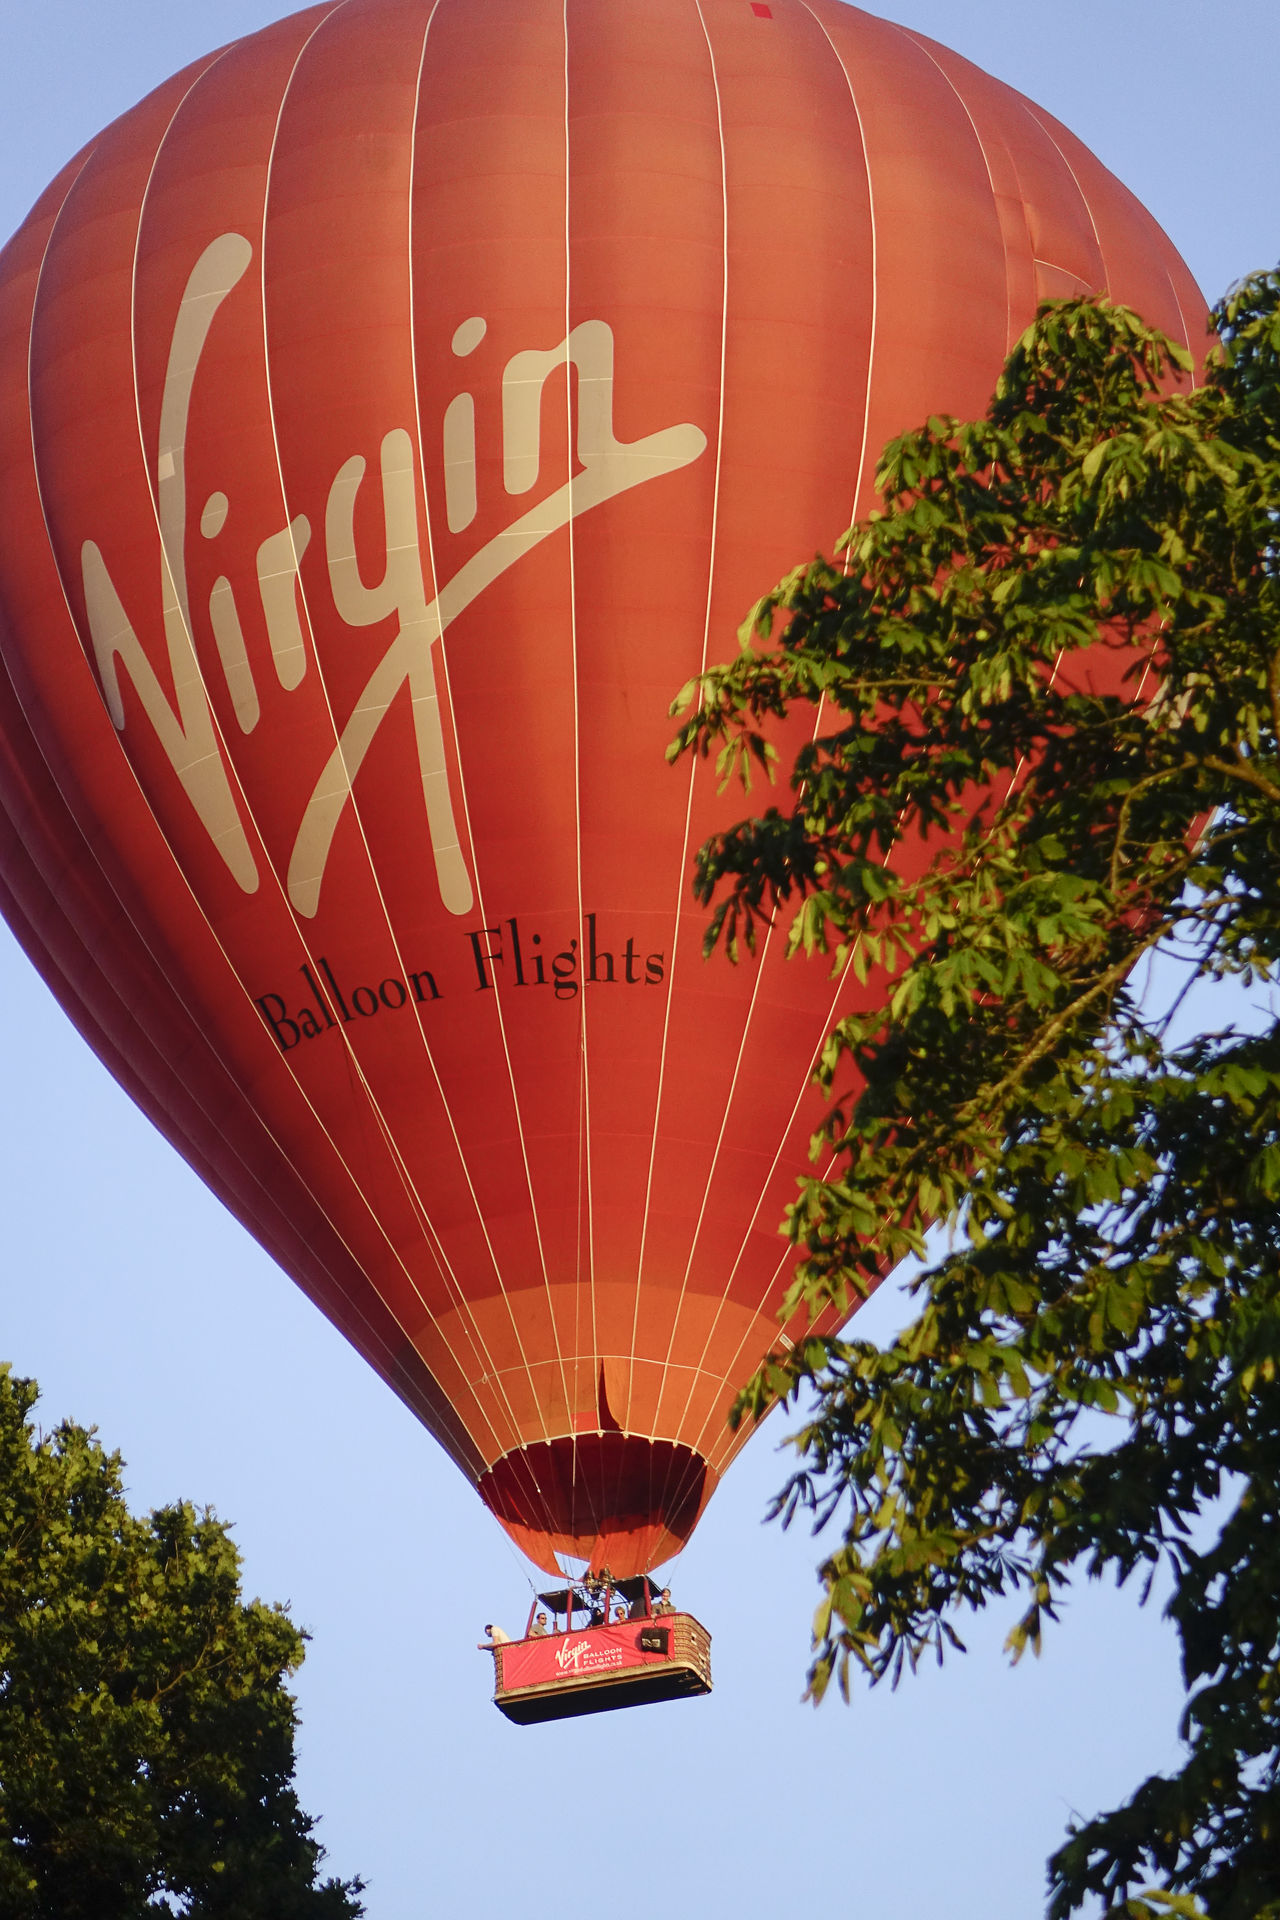 A Virgin hot air balloon flight over the Surrey countryside in Milford, England. England England, UK England🇬🇧 Flight Godalming Hot Air Balloon Hot Air Ballooning Hot Air Balloons Landing Milford Richard Branson Surrey Surrey Countryside Uk Virgin